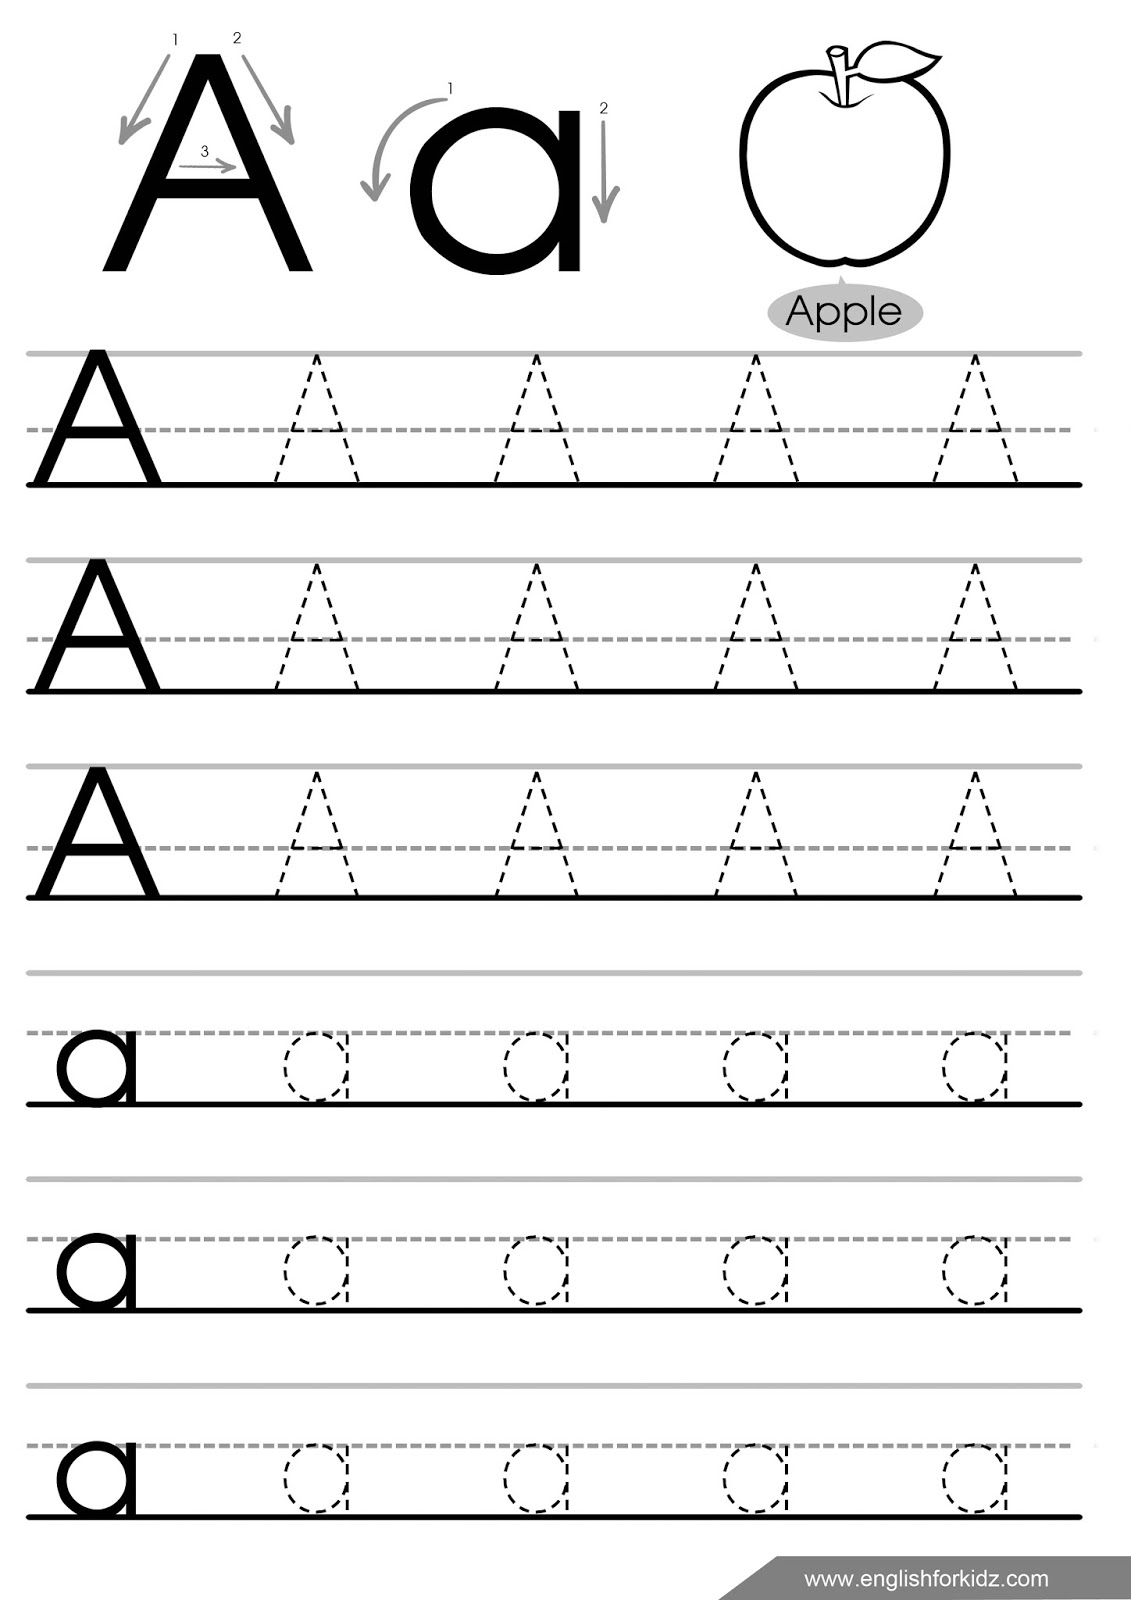 Printable Tracing Numbers Worksheets: Free Printable Tracing ...